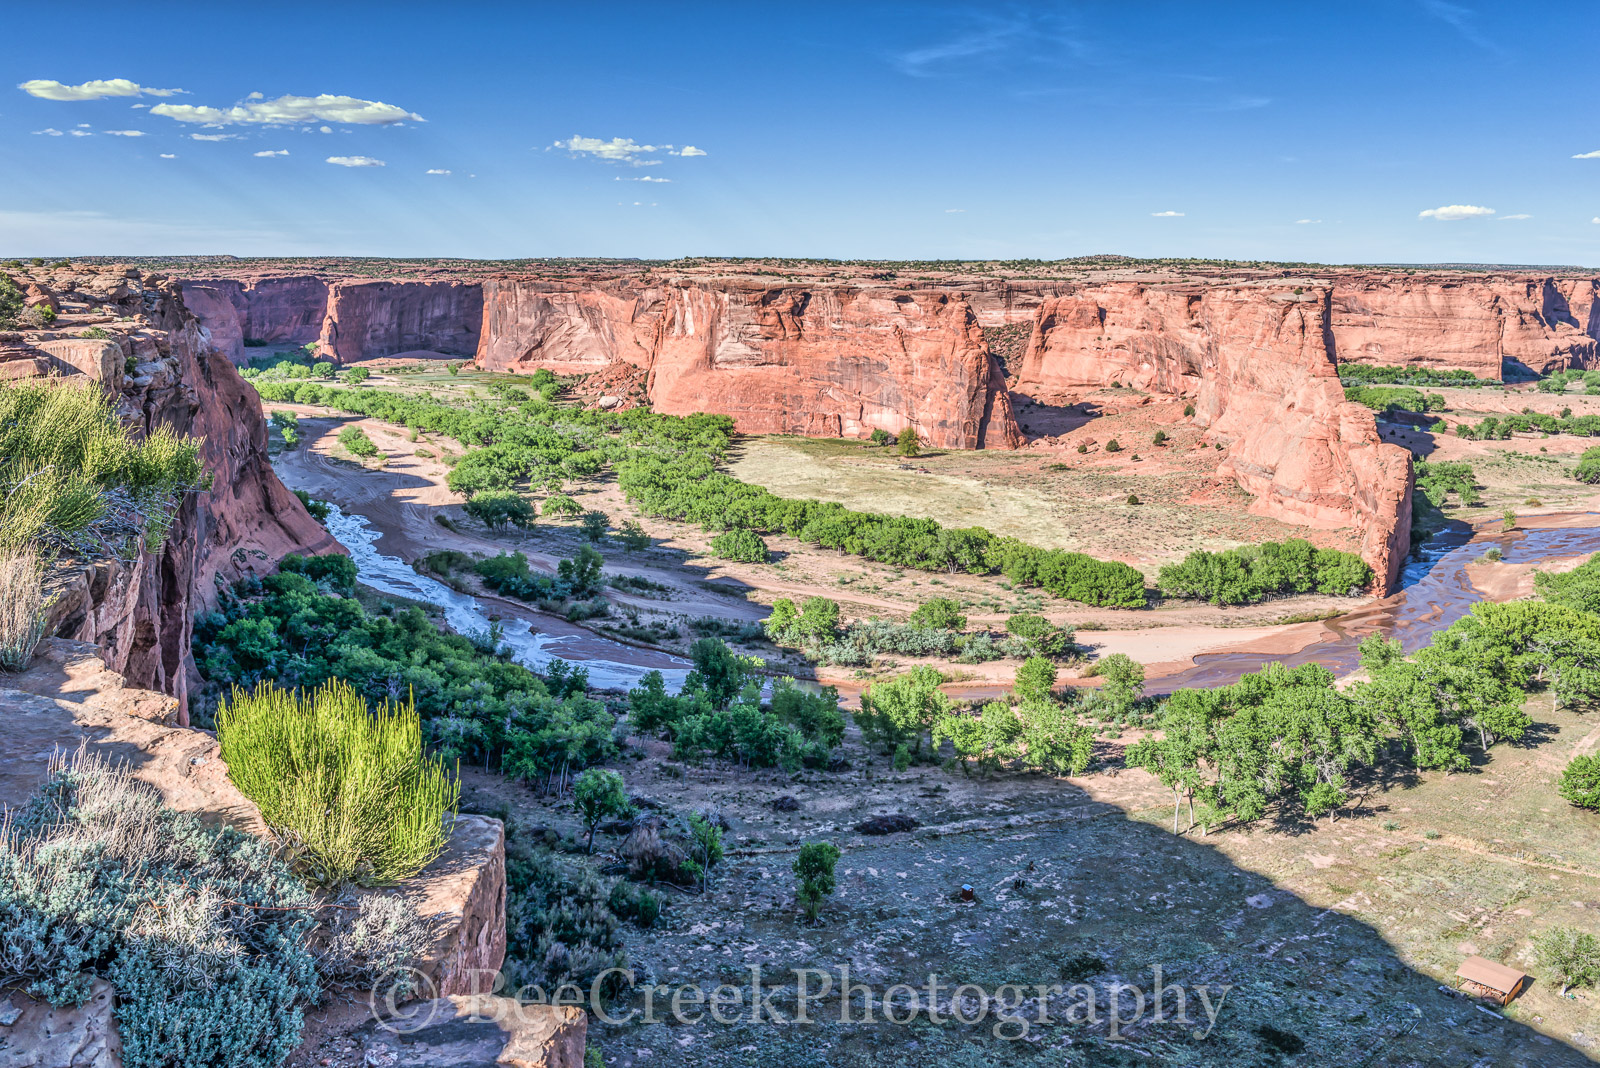 Anasazi, Arizona, Canyon de Chelly, Indian, Indian life, Navajo, Reservation, River, ancient, canyon landscapes, canyons, cliff dwellings, geology, landscape, landscapes, mountain landscapes, nature, , photo